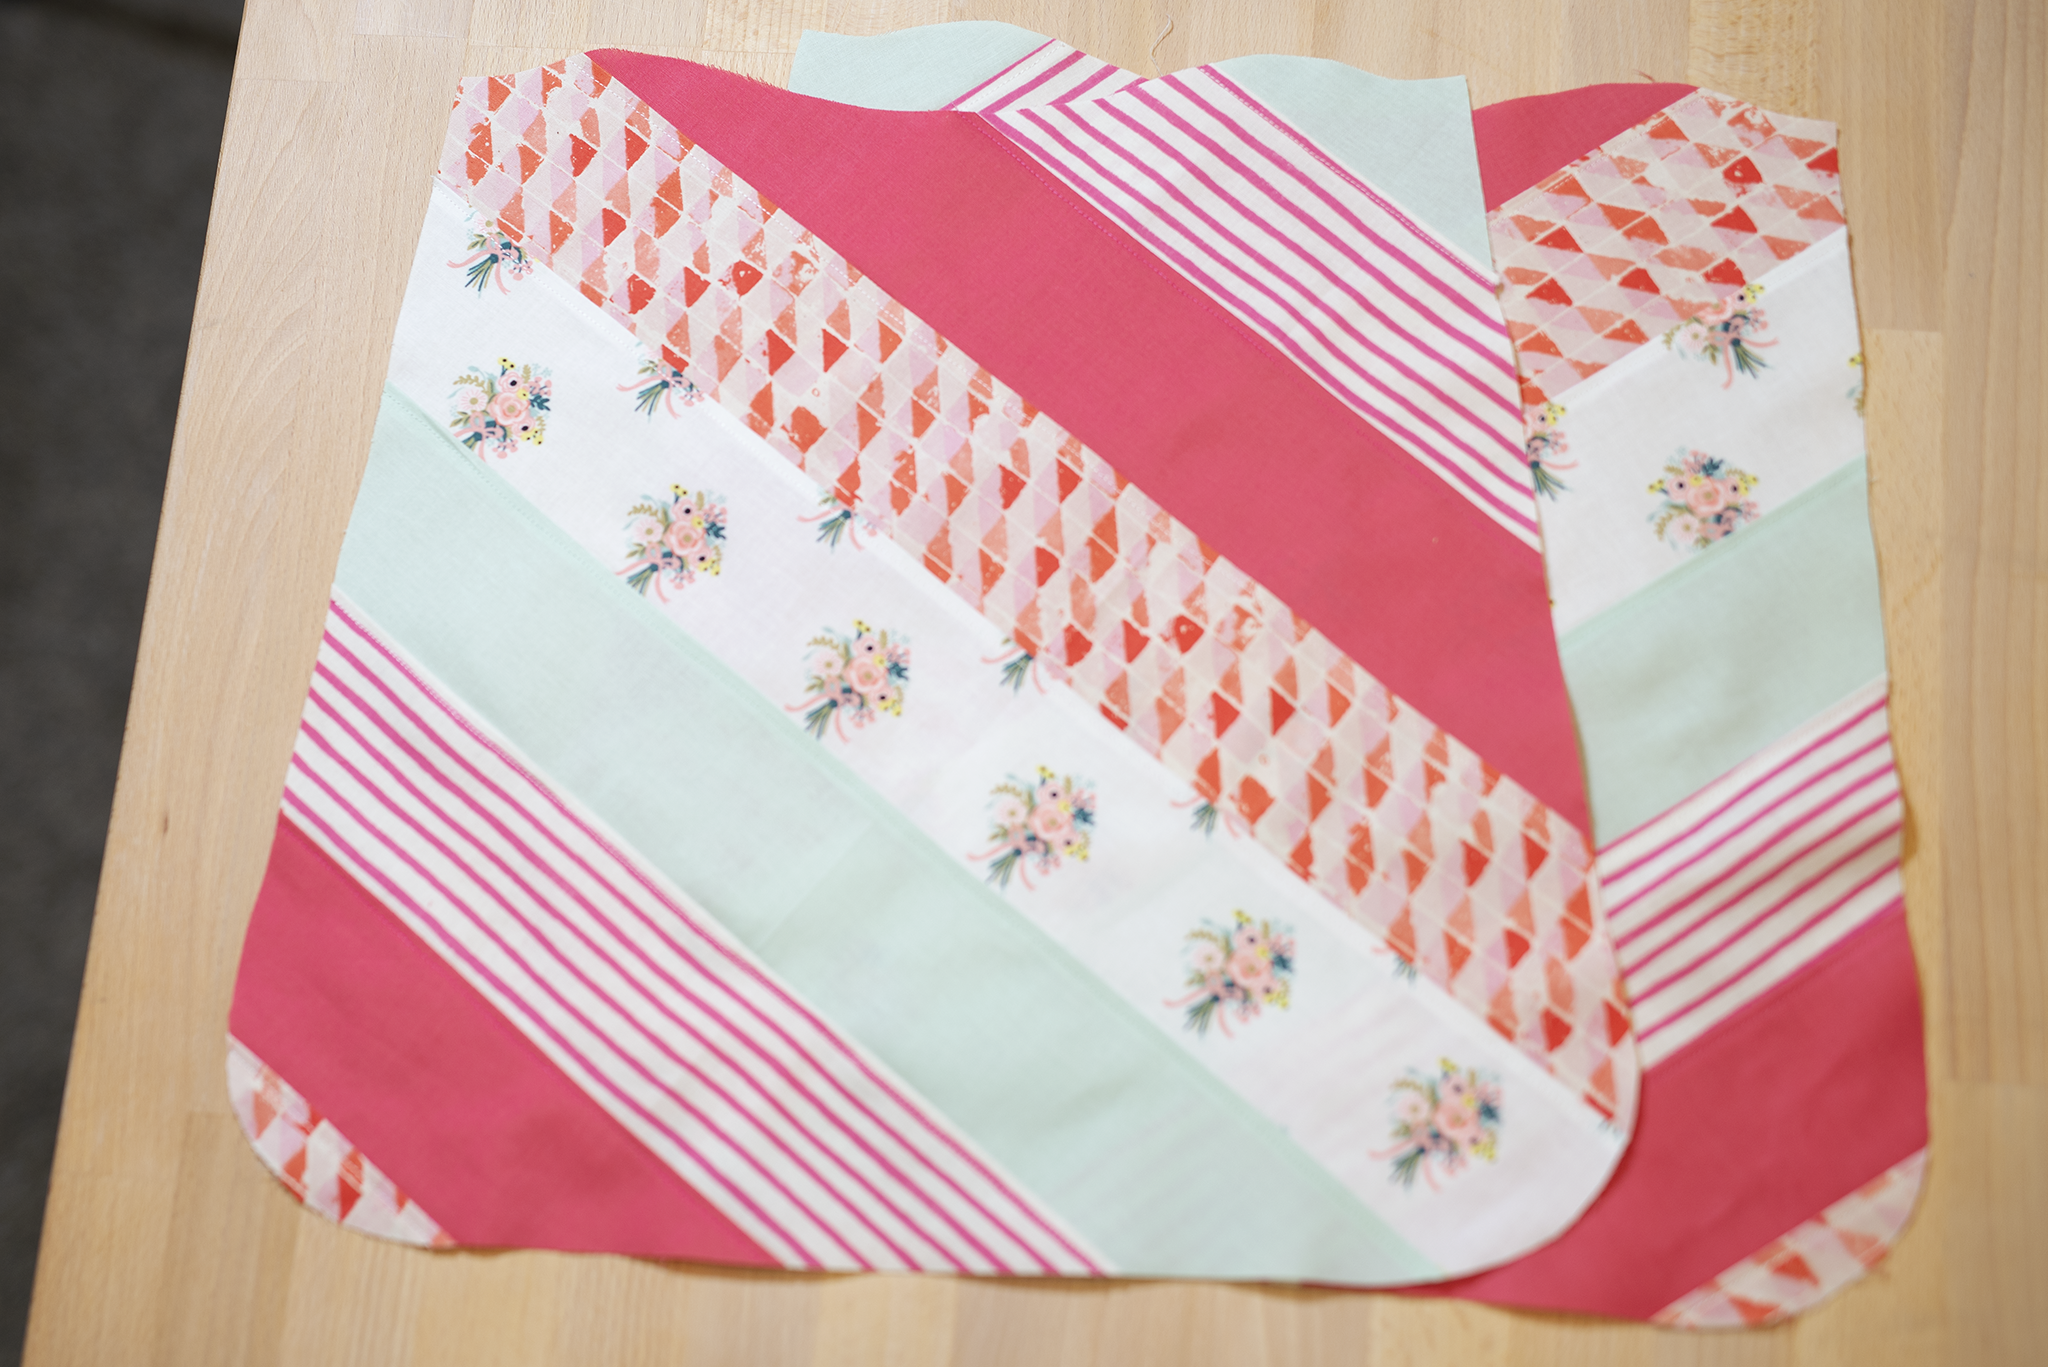 fabrics sewn together in squares